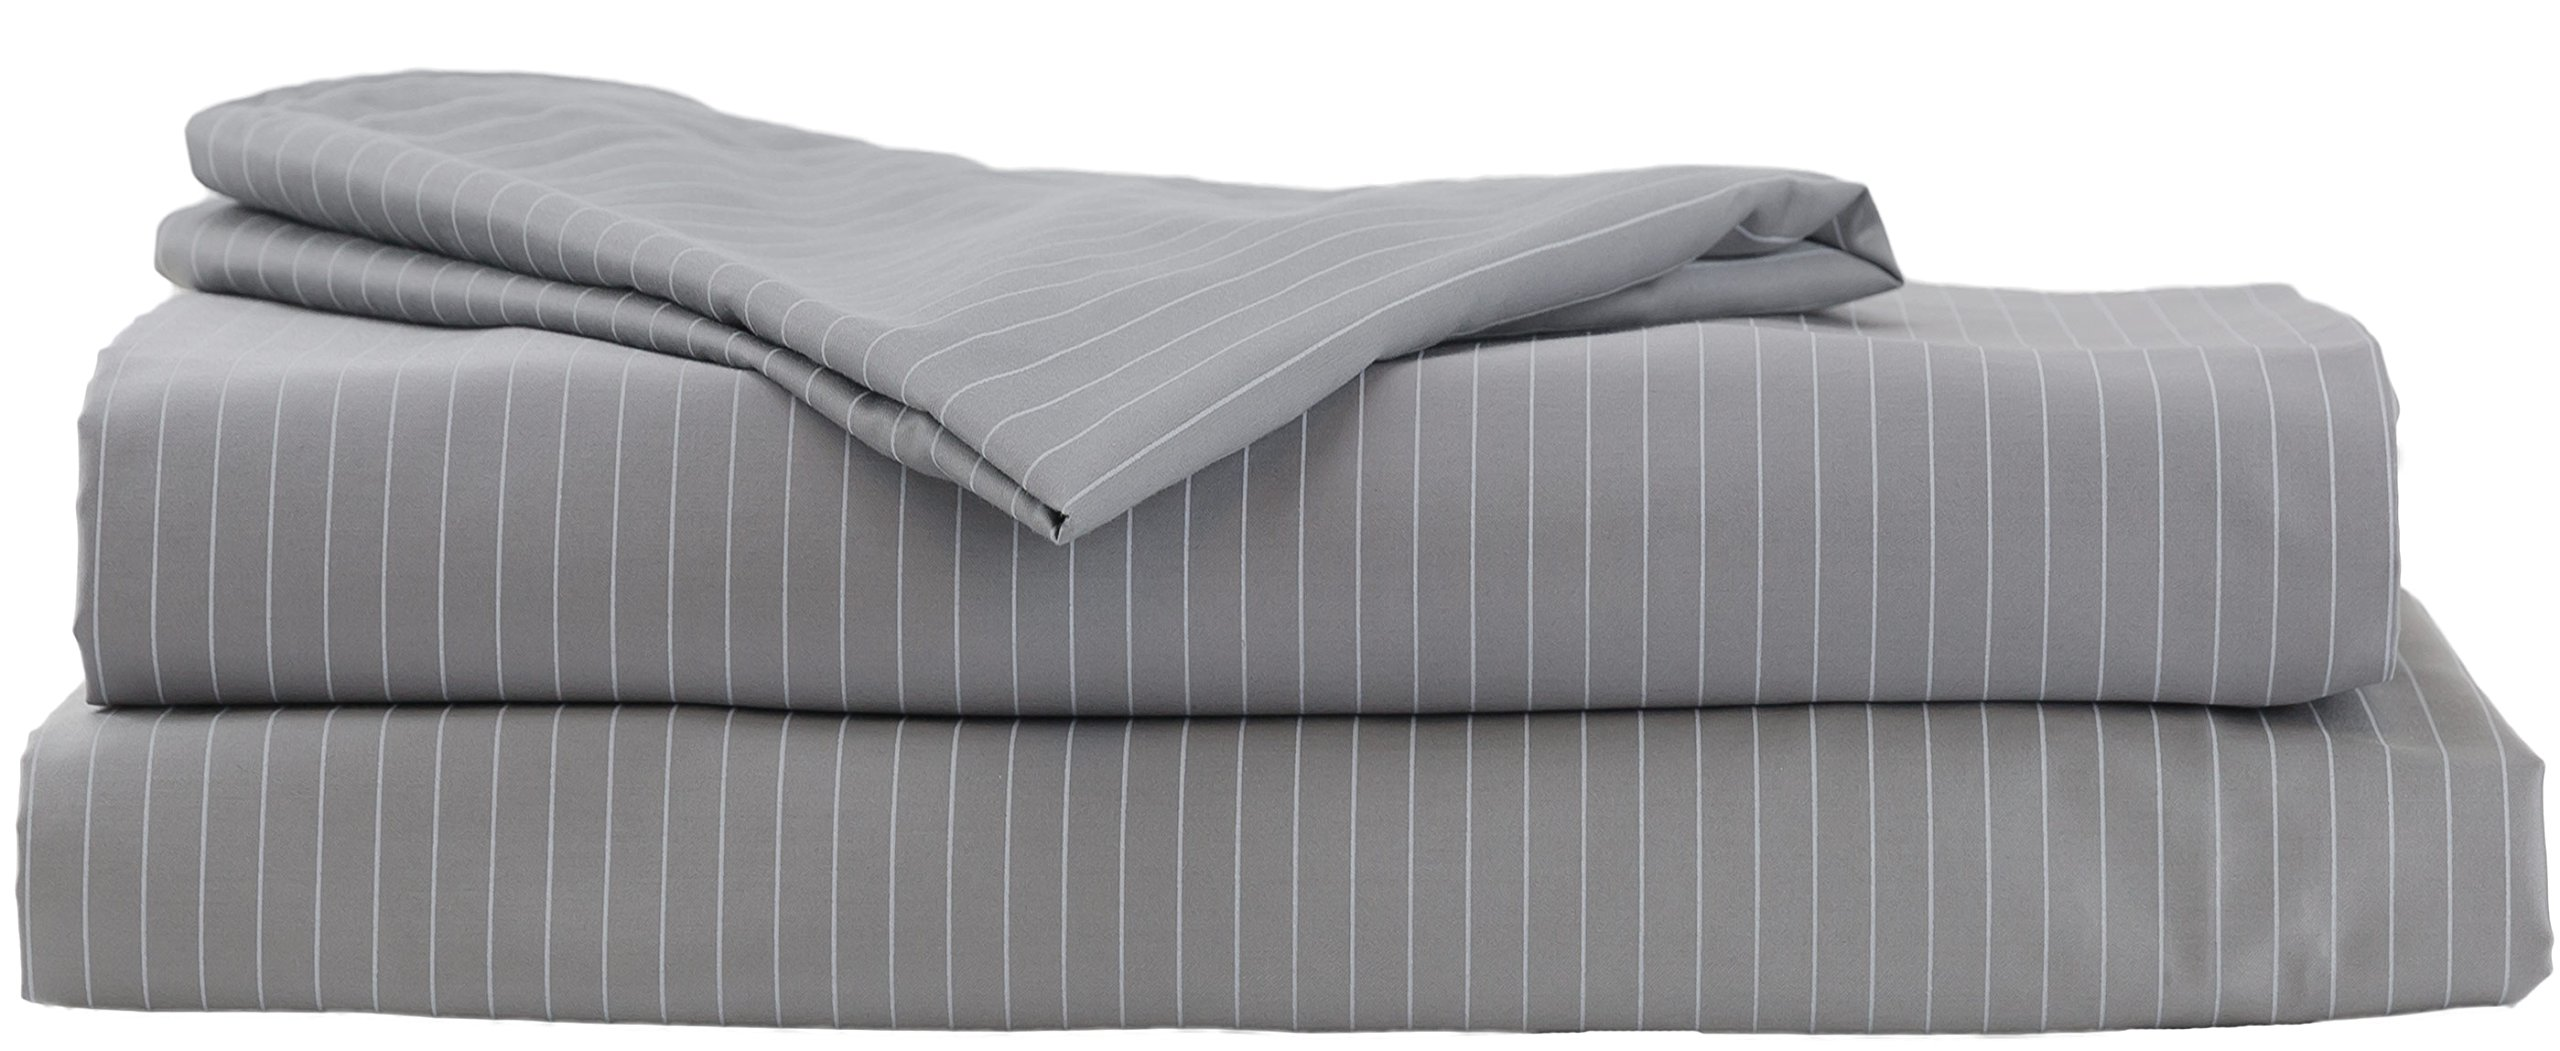 Hotel Sheets Direct 100% Egyptian Cotton 4 Piece Bed Sheet Set - Luxurious Sateen Weave - Ultimate Softness (Grey Stripe, King) - 100% Egyptian Cotton Bed Sheet Set Includes Fitted Sheet, Flat Sheet, and 1 Pillowcase SUPER HIGH THREAD COUNT - 600 Thread Count in Sateen Weave and Single Picked for Extra Durability. Updated Spring 2018 to be more soft, thicker, and more durable 100% Organic Cotton Used and Oeko-Tex certified to be free of harmful chemicals - sheet-sets, bedroom-sheets-comforters, bedroom - 81ydbce9ioL -